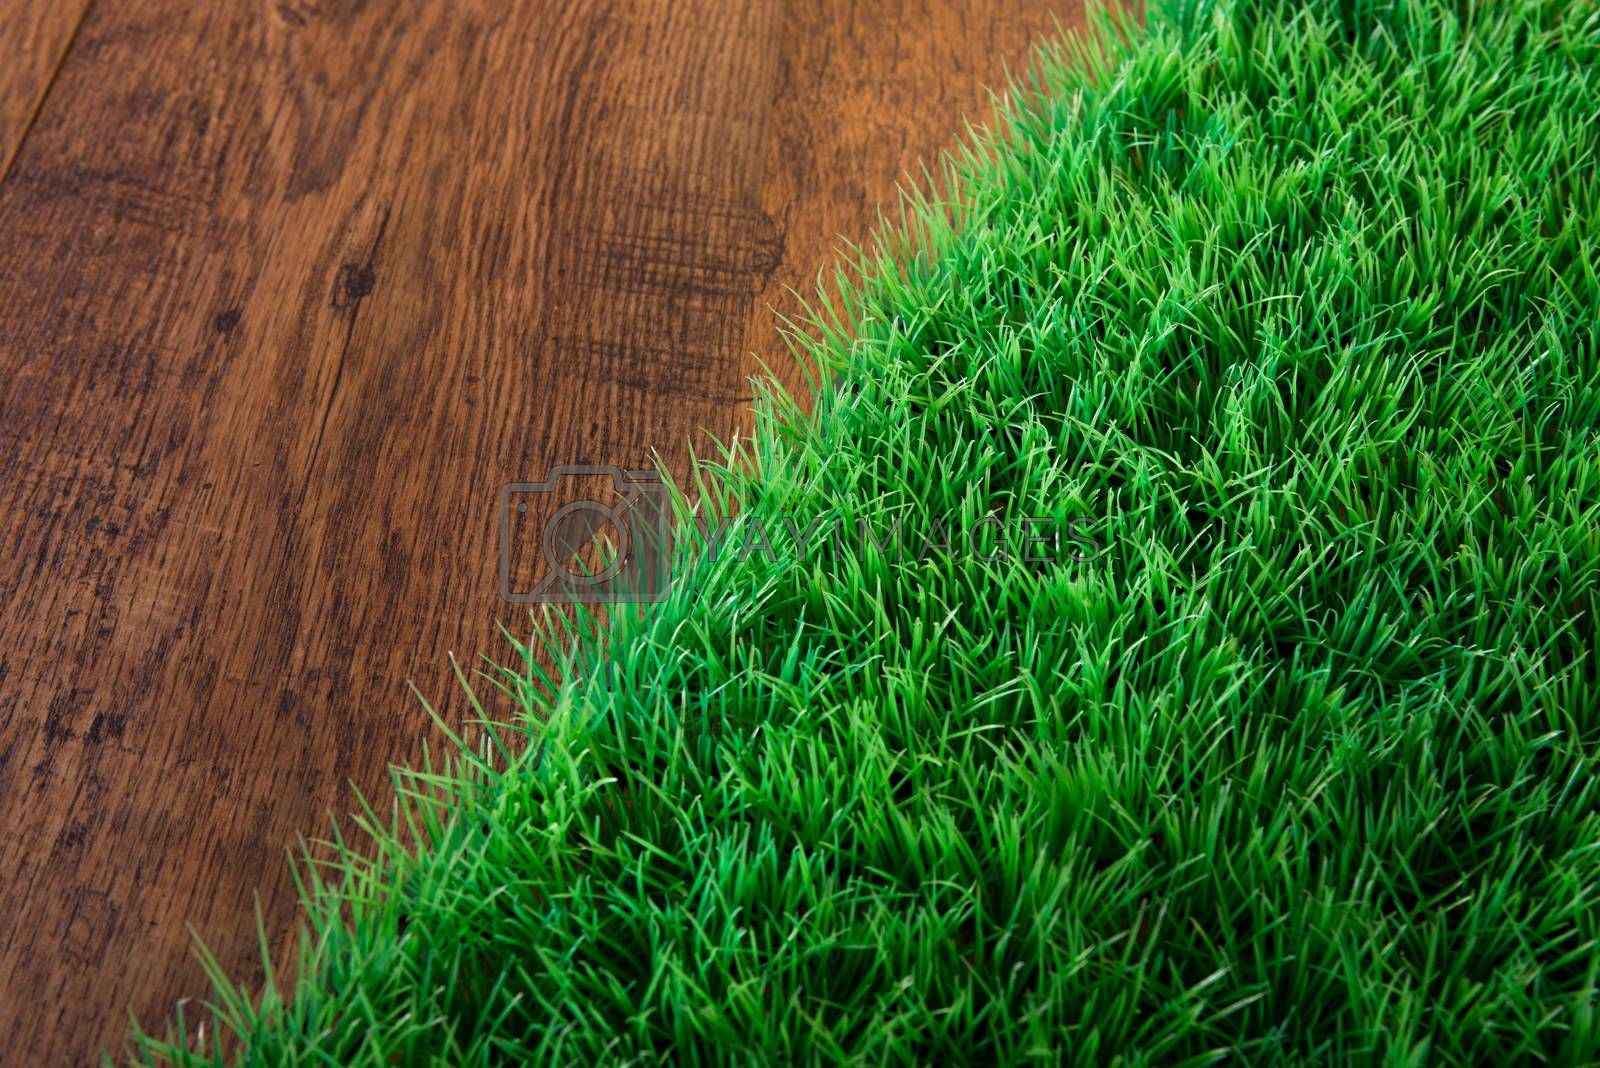 Artificial lush grass close-up on wooden hardwood floor.